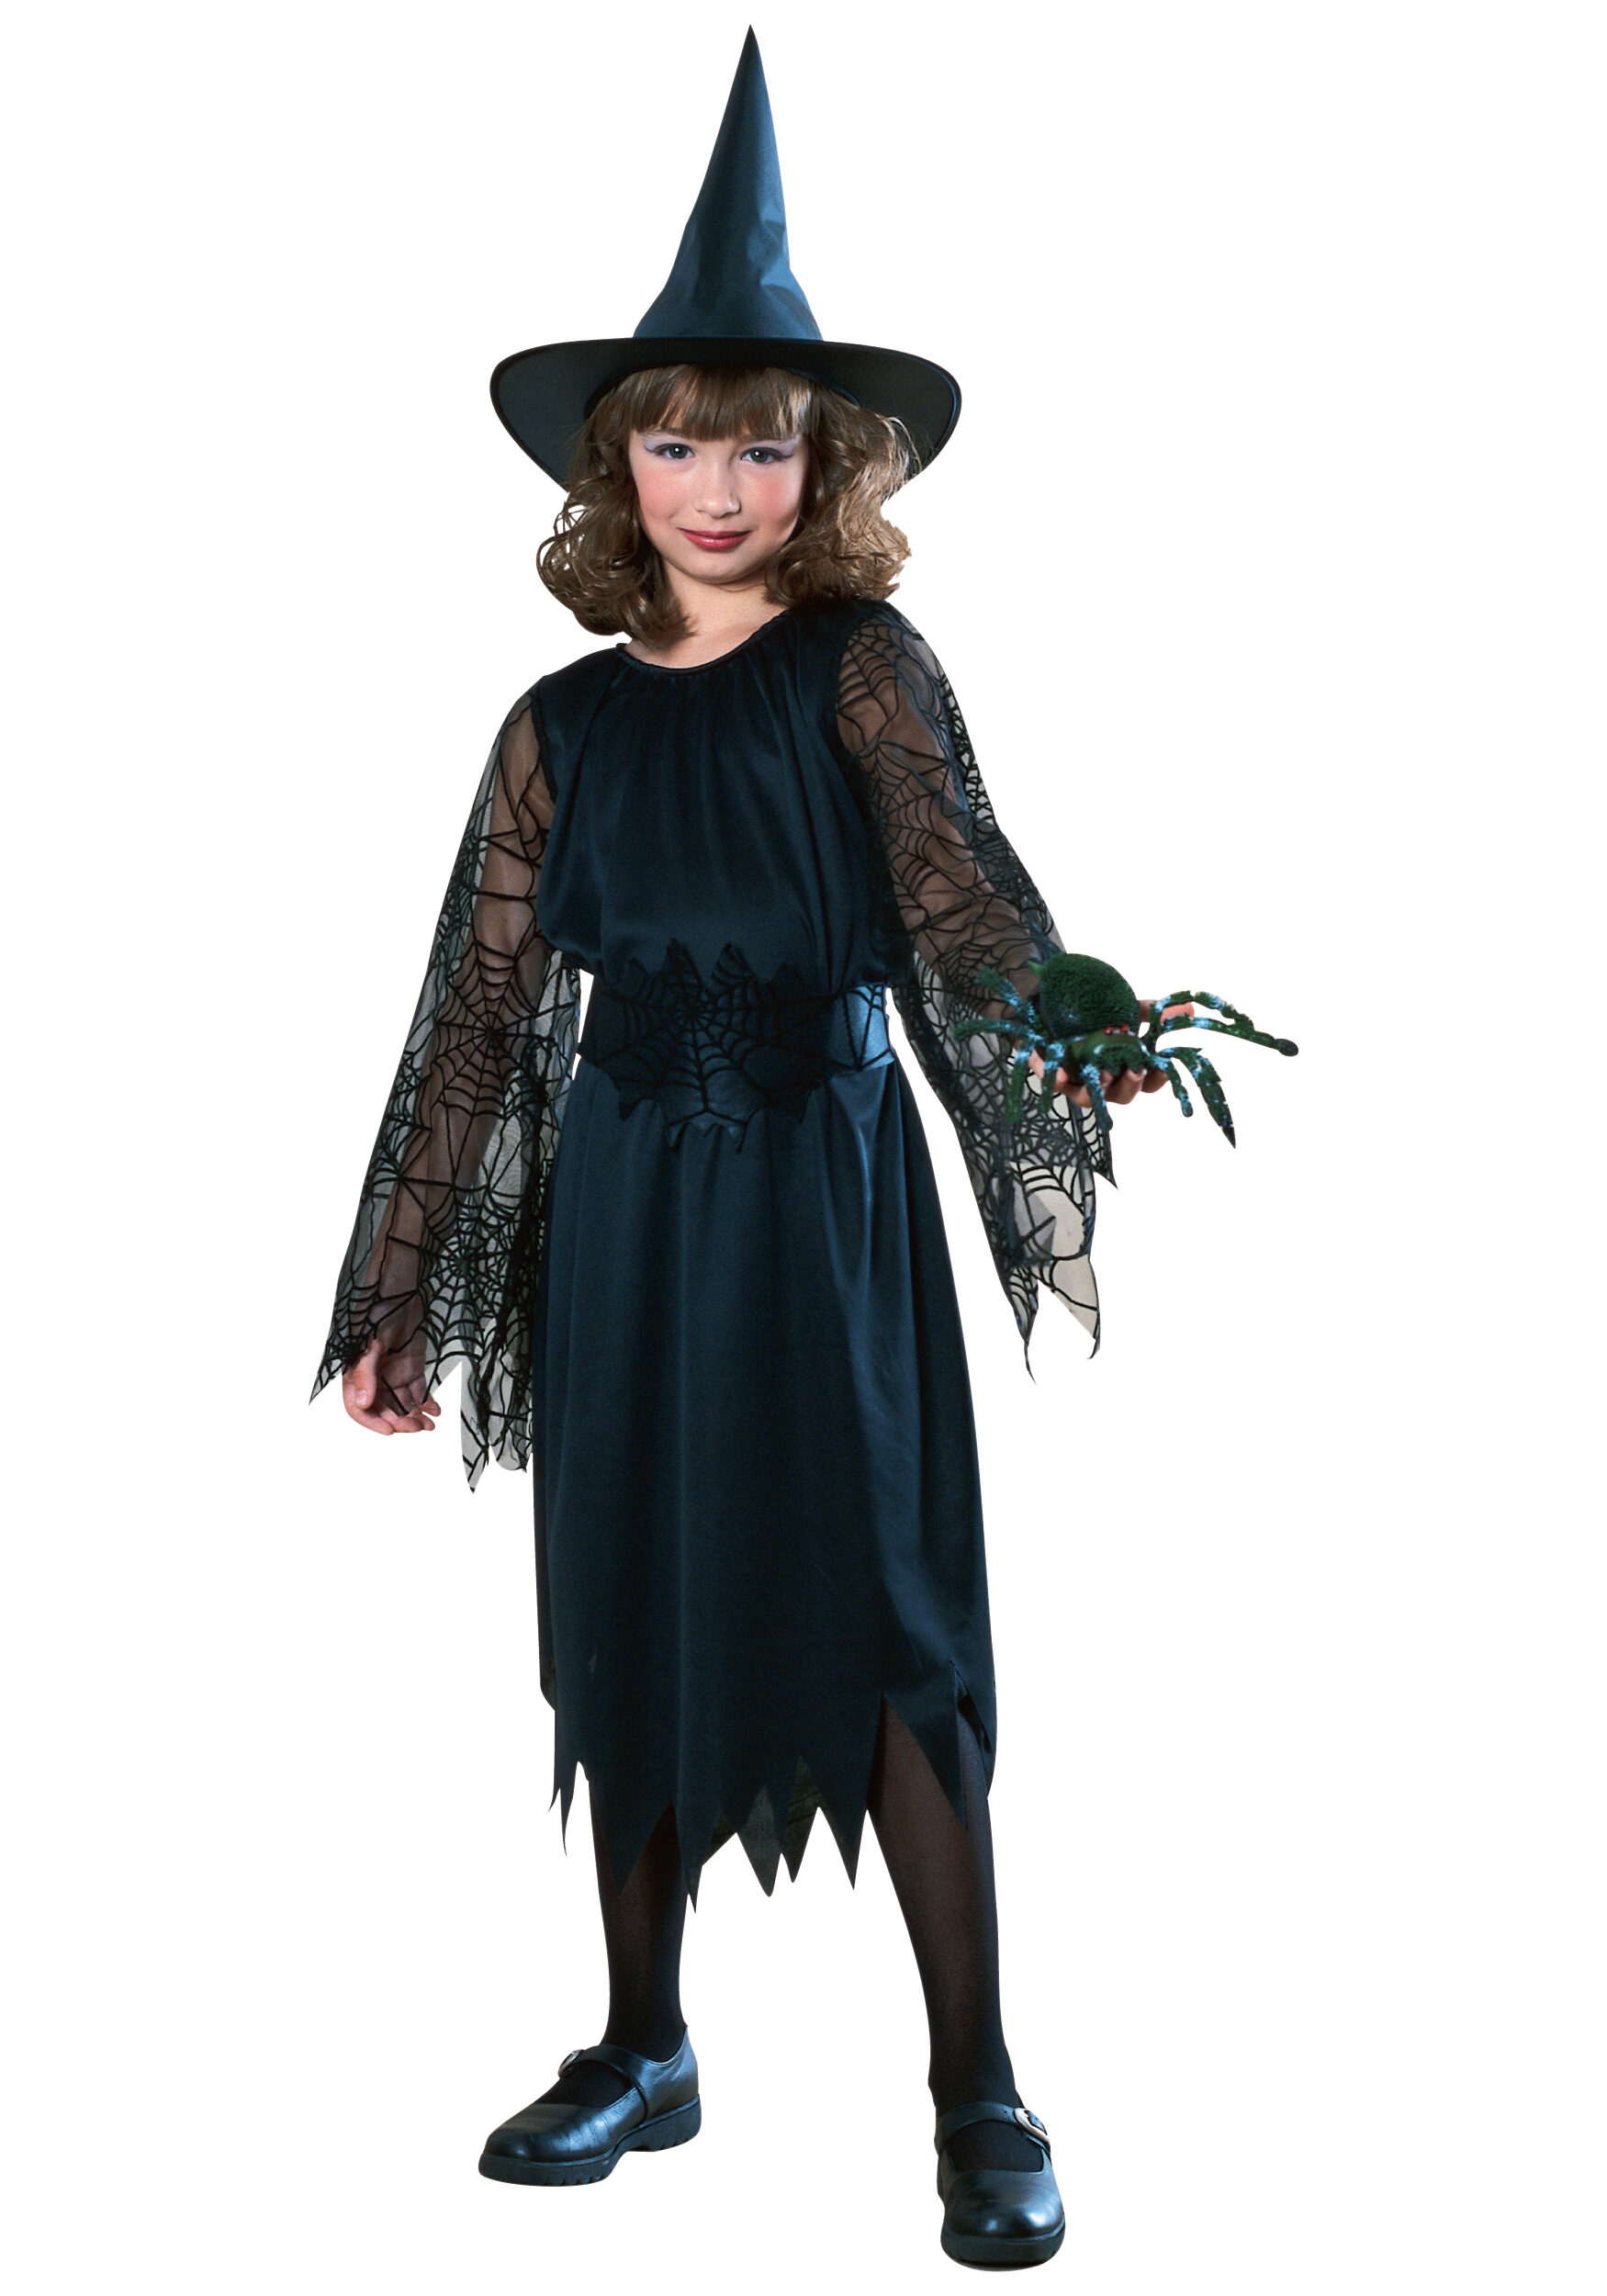 spider witch kids costume mr costumes - Spider Witch Halloween Costume